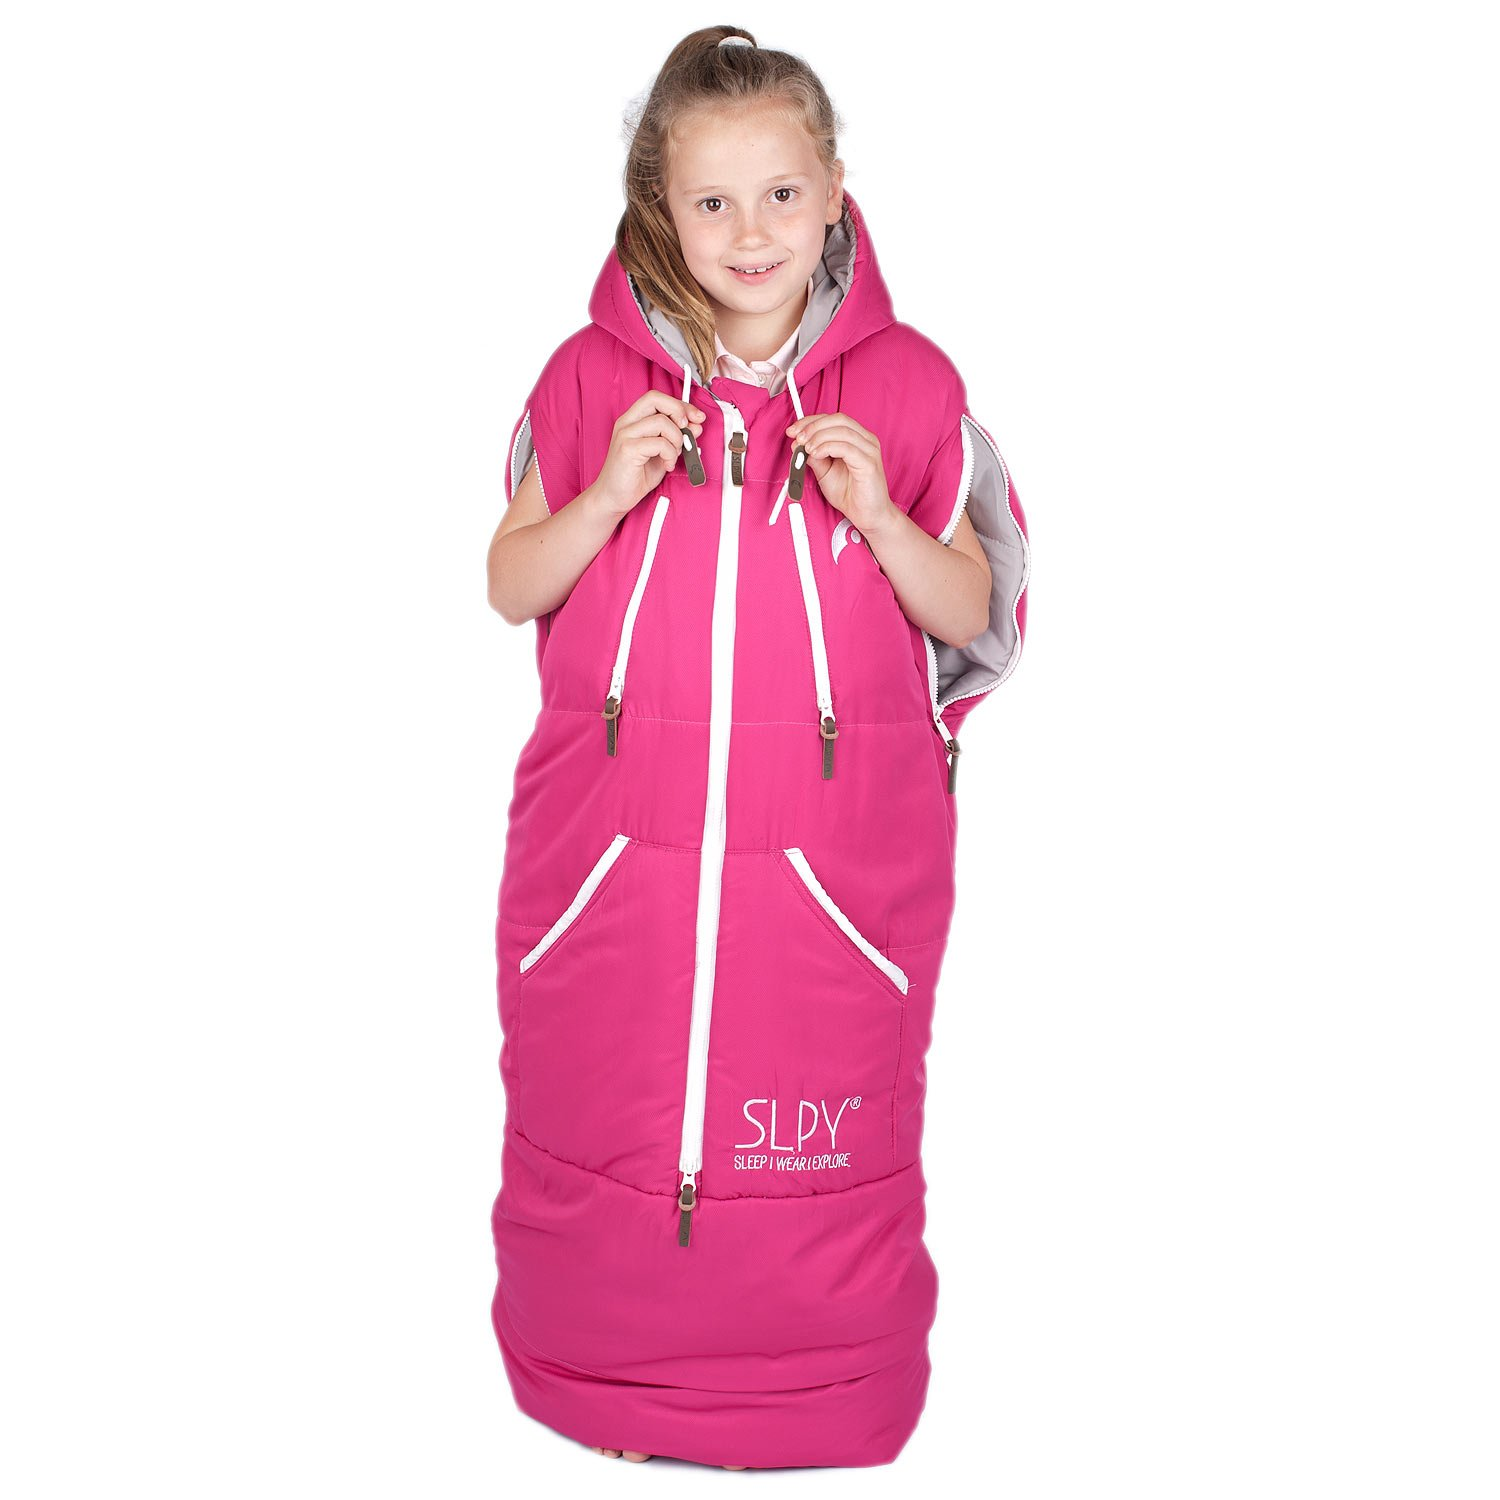 SLPY The Wearable Sleeping Bag - Kids Sleepy One Size Pink by SLPY